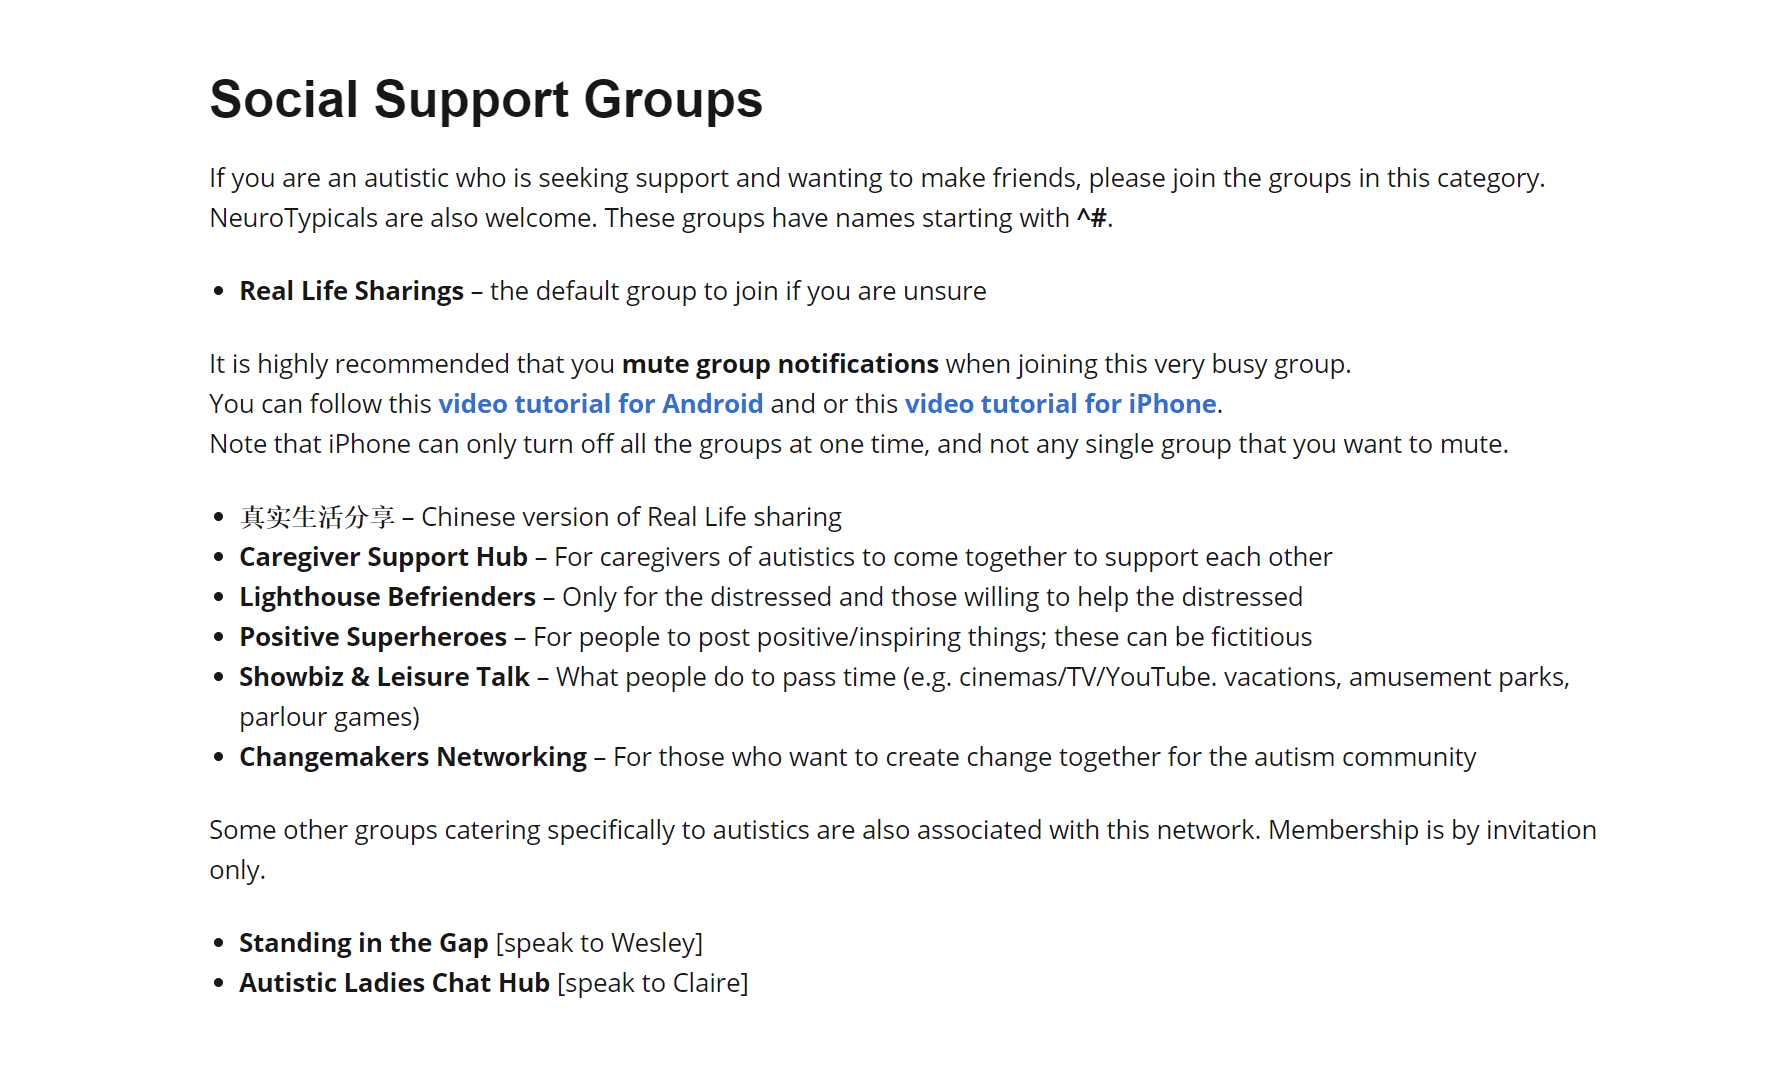 A screenshot of various social support groups in the WhatsApp Autism Community Singapore chat group, which includes Caregiver Support Hub, Changemakers Networking, and Lighthouse Befrienders